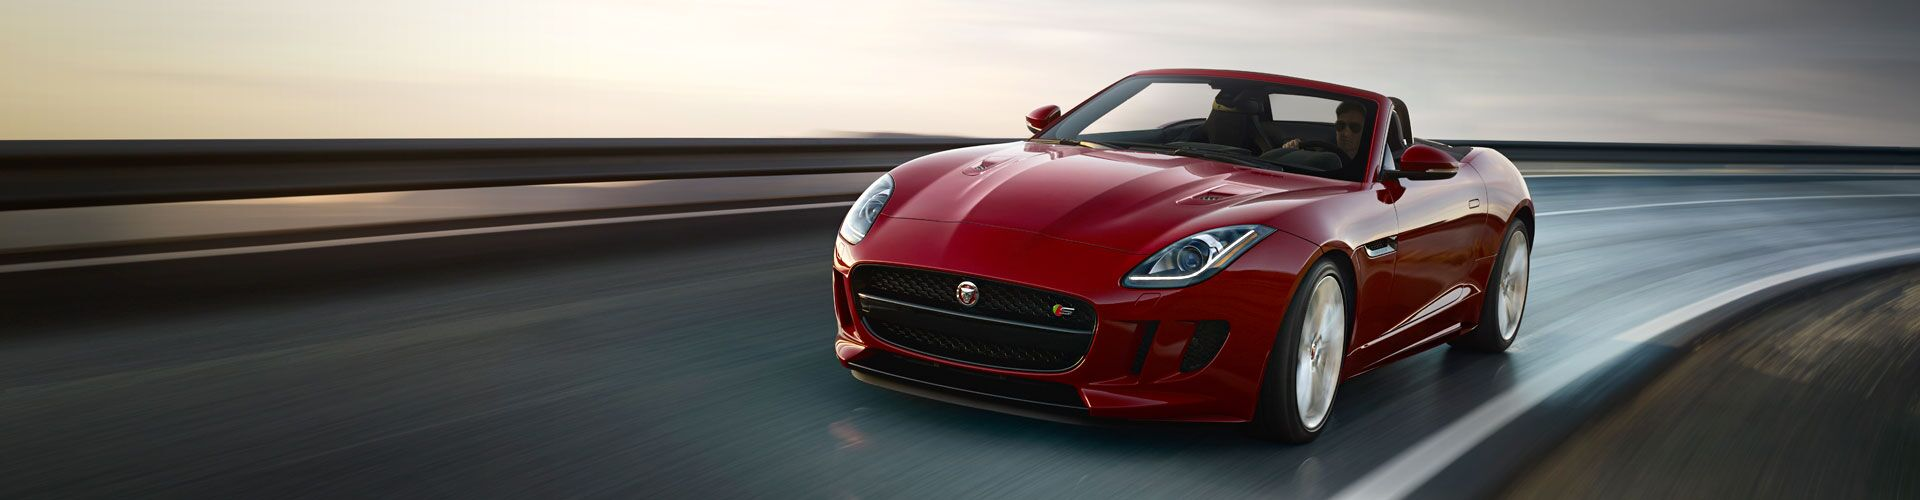 New Jaguar F-TYPE at Jaguar Ventura